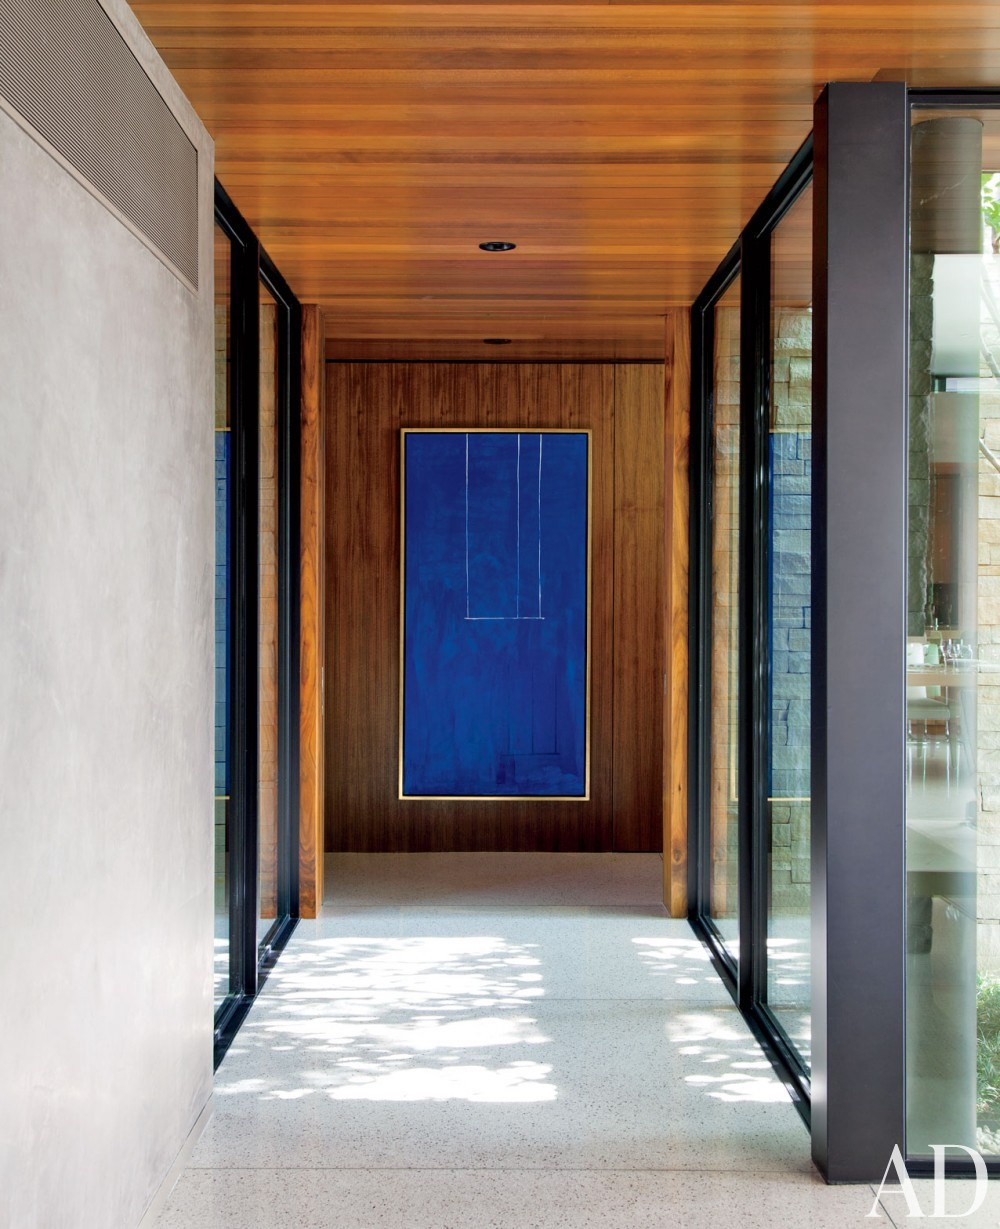 Contemporary Staircase/Hallway by Boehm Design Associates and Marmol Radziner in Beverly Hills, California